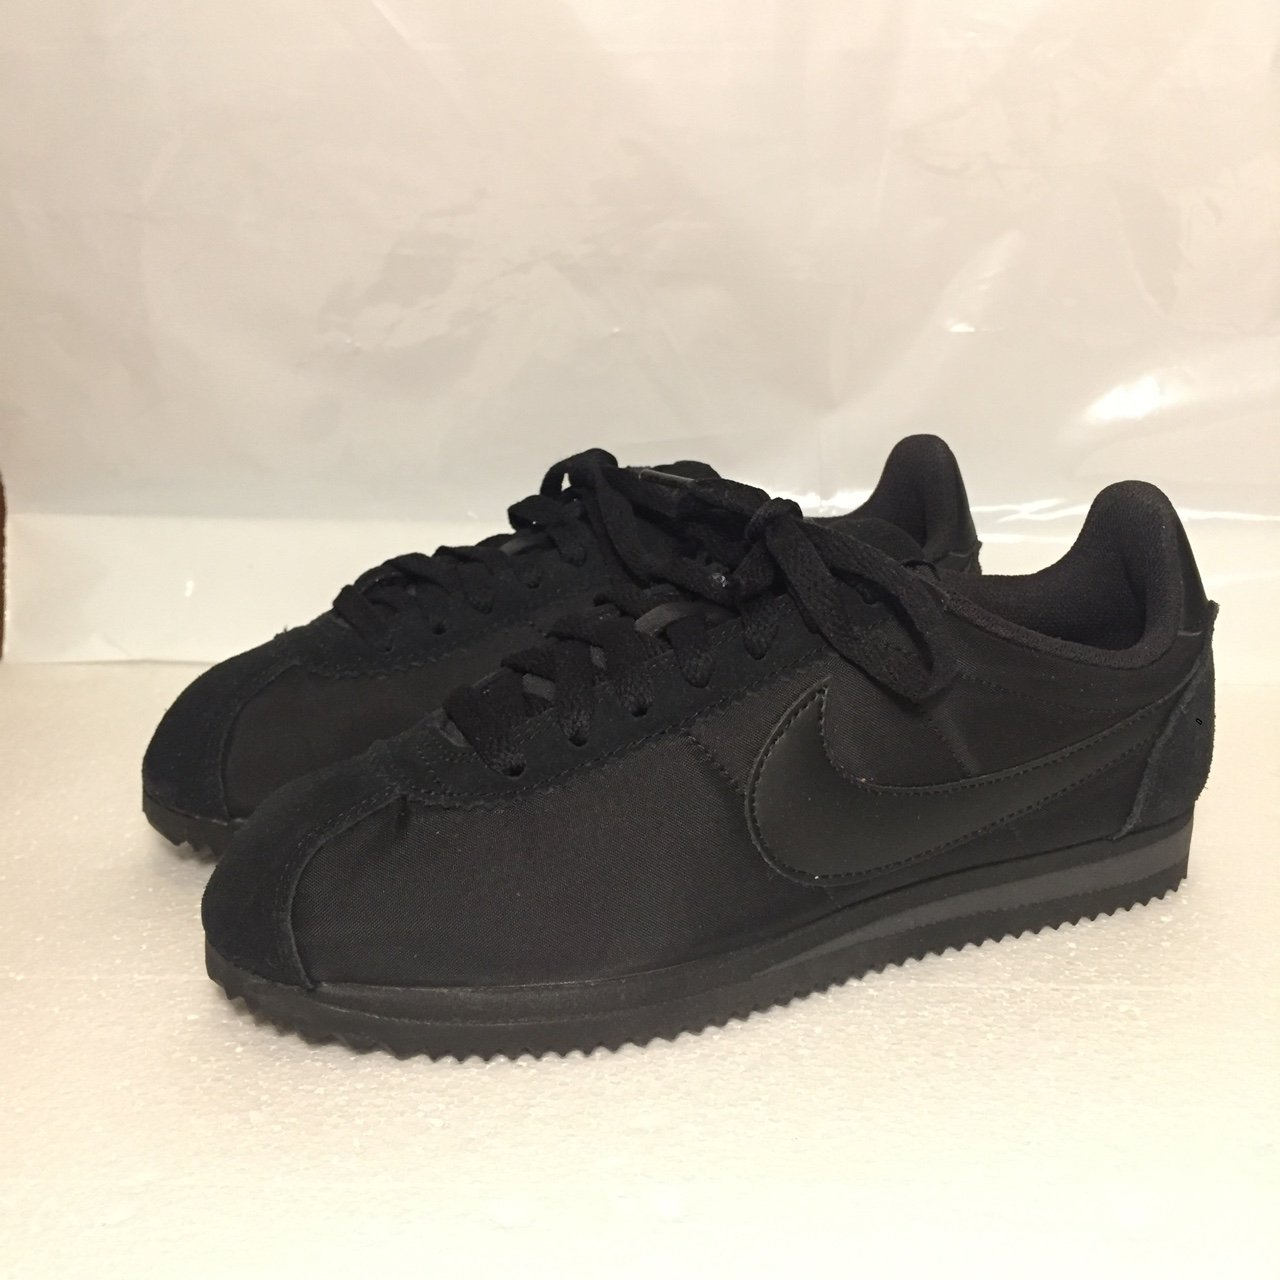 buy online 04a7f c2e33  justdoneit. last year. Leeds, United Kingdom. Nike Classic Cortez • Suede Nylon  • Brand New with Box (no lid) • Triple Black ...